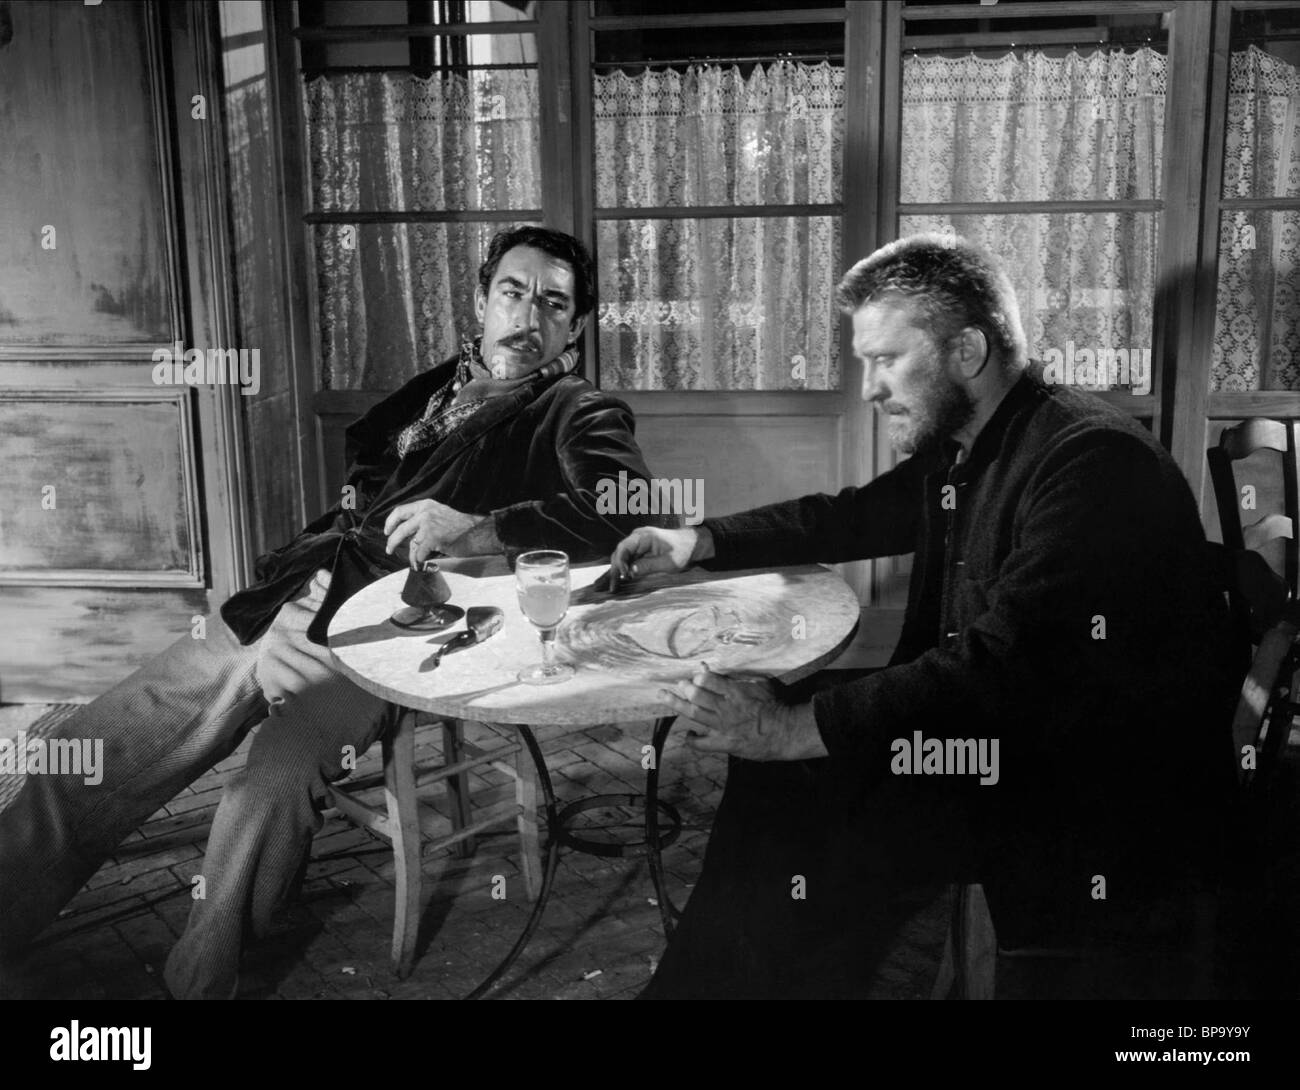 ANTHONY QUINN & KIRK DOUGLAS LUST FOR LIFE - VINCENT VAN GOUGH (1956) Stock Photo